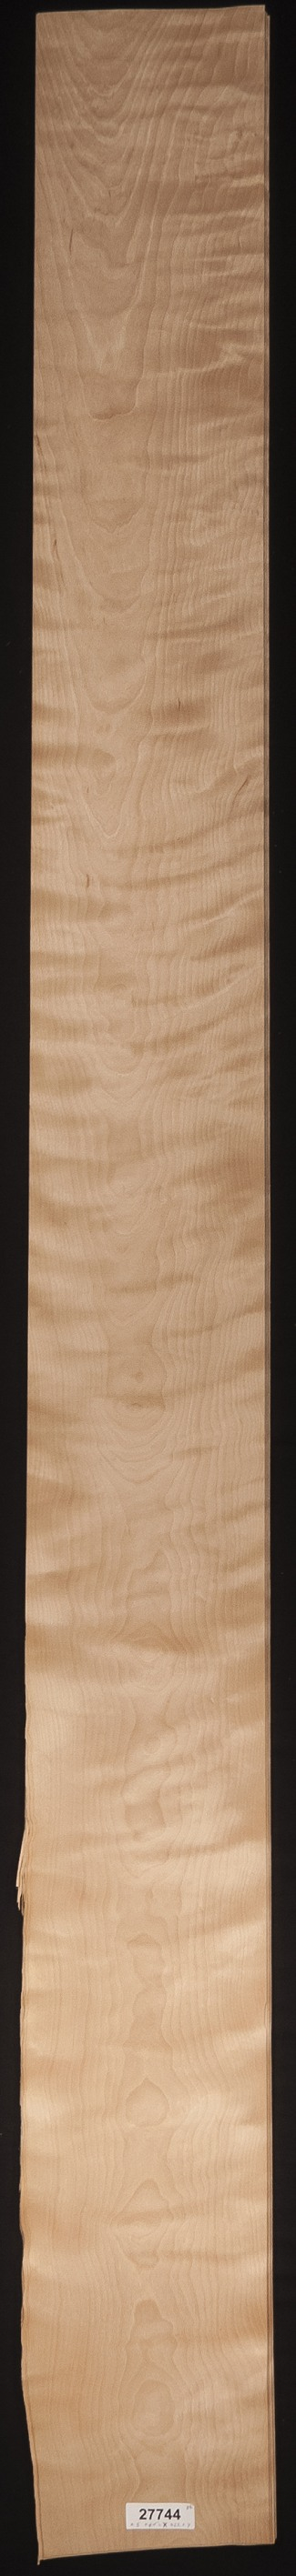 AAA Figured Birch (White) Veneer Sheet